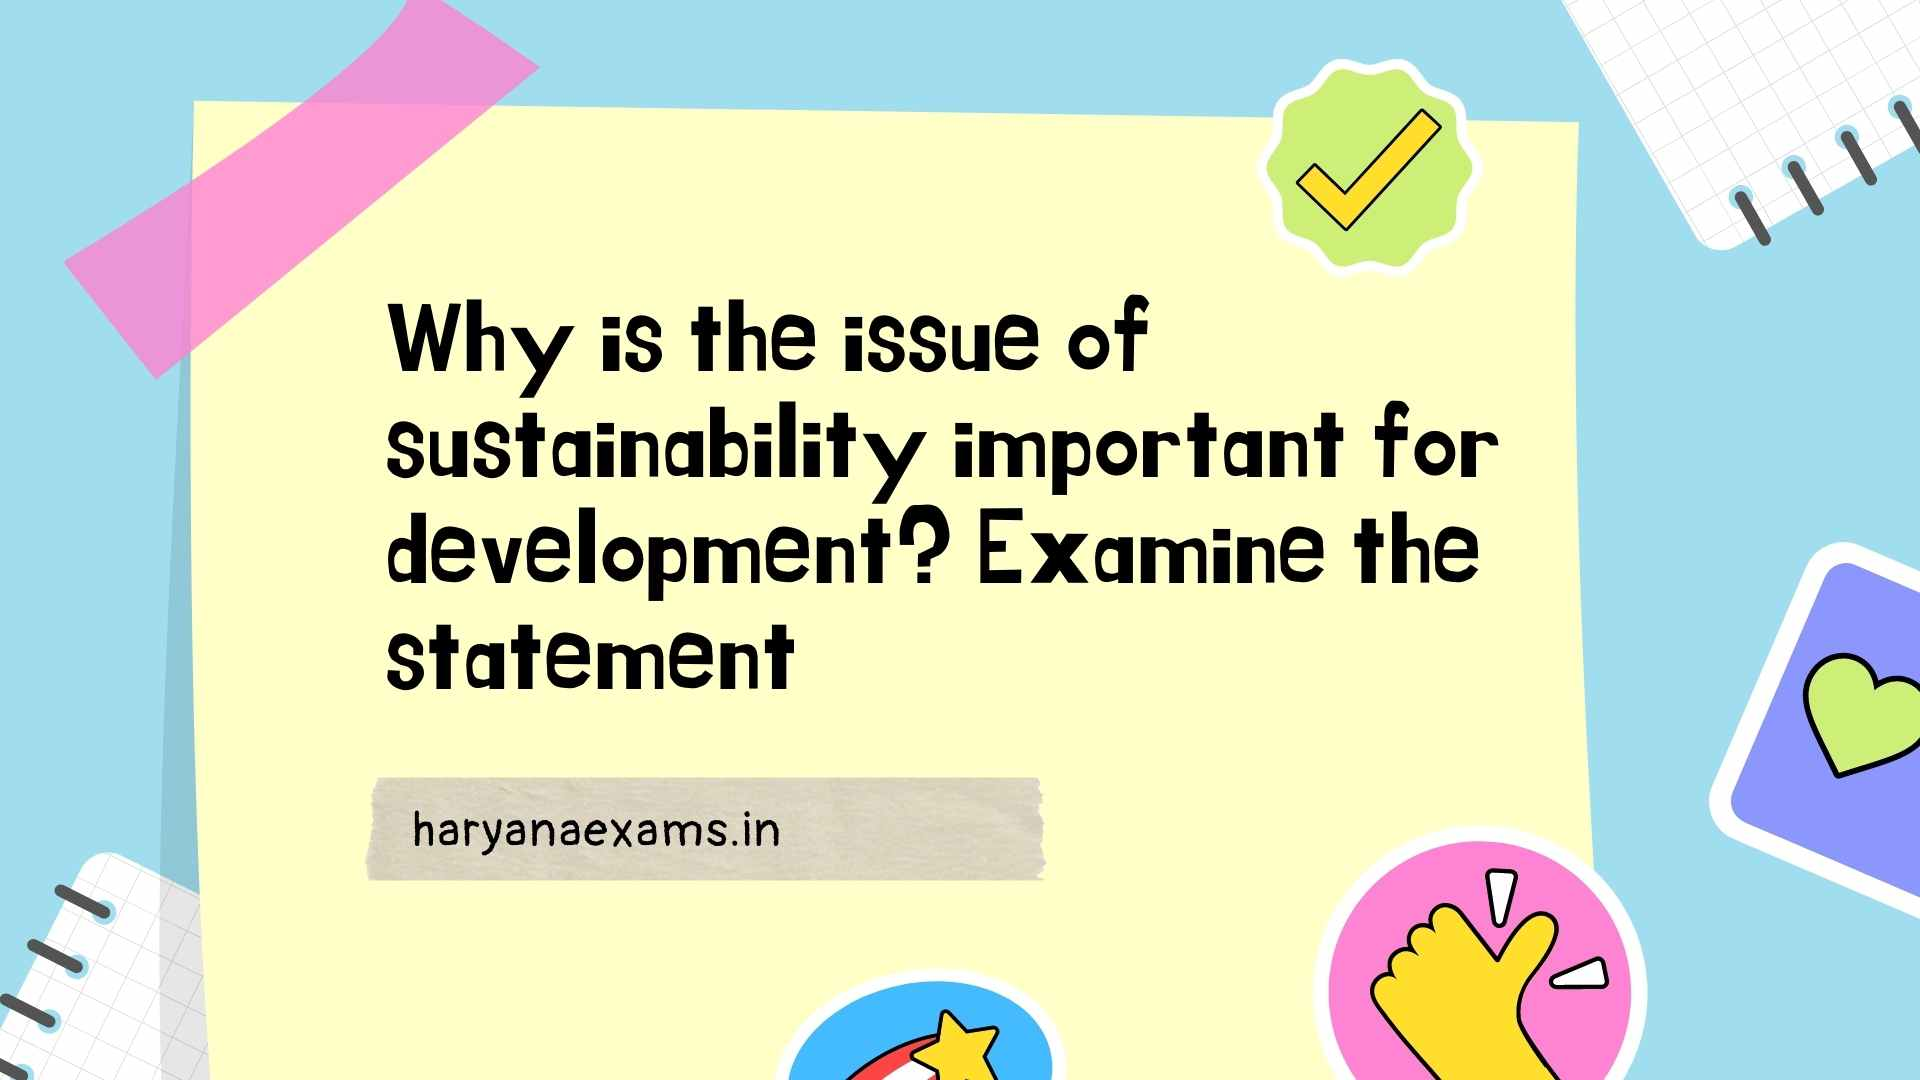 Why is the issue of sustainability important for development? Examine the statement